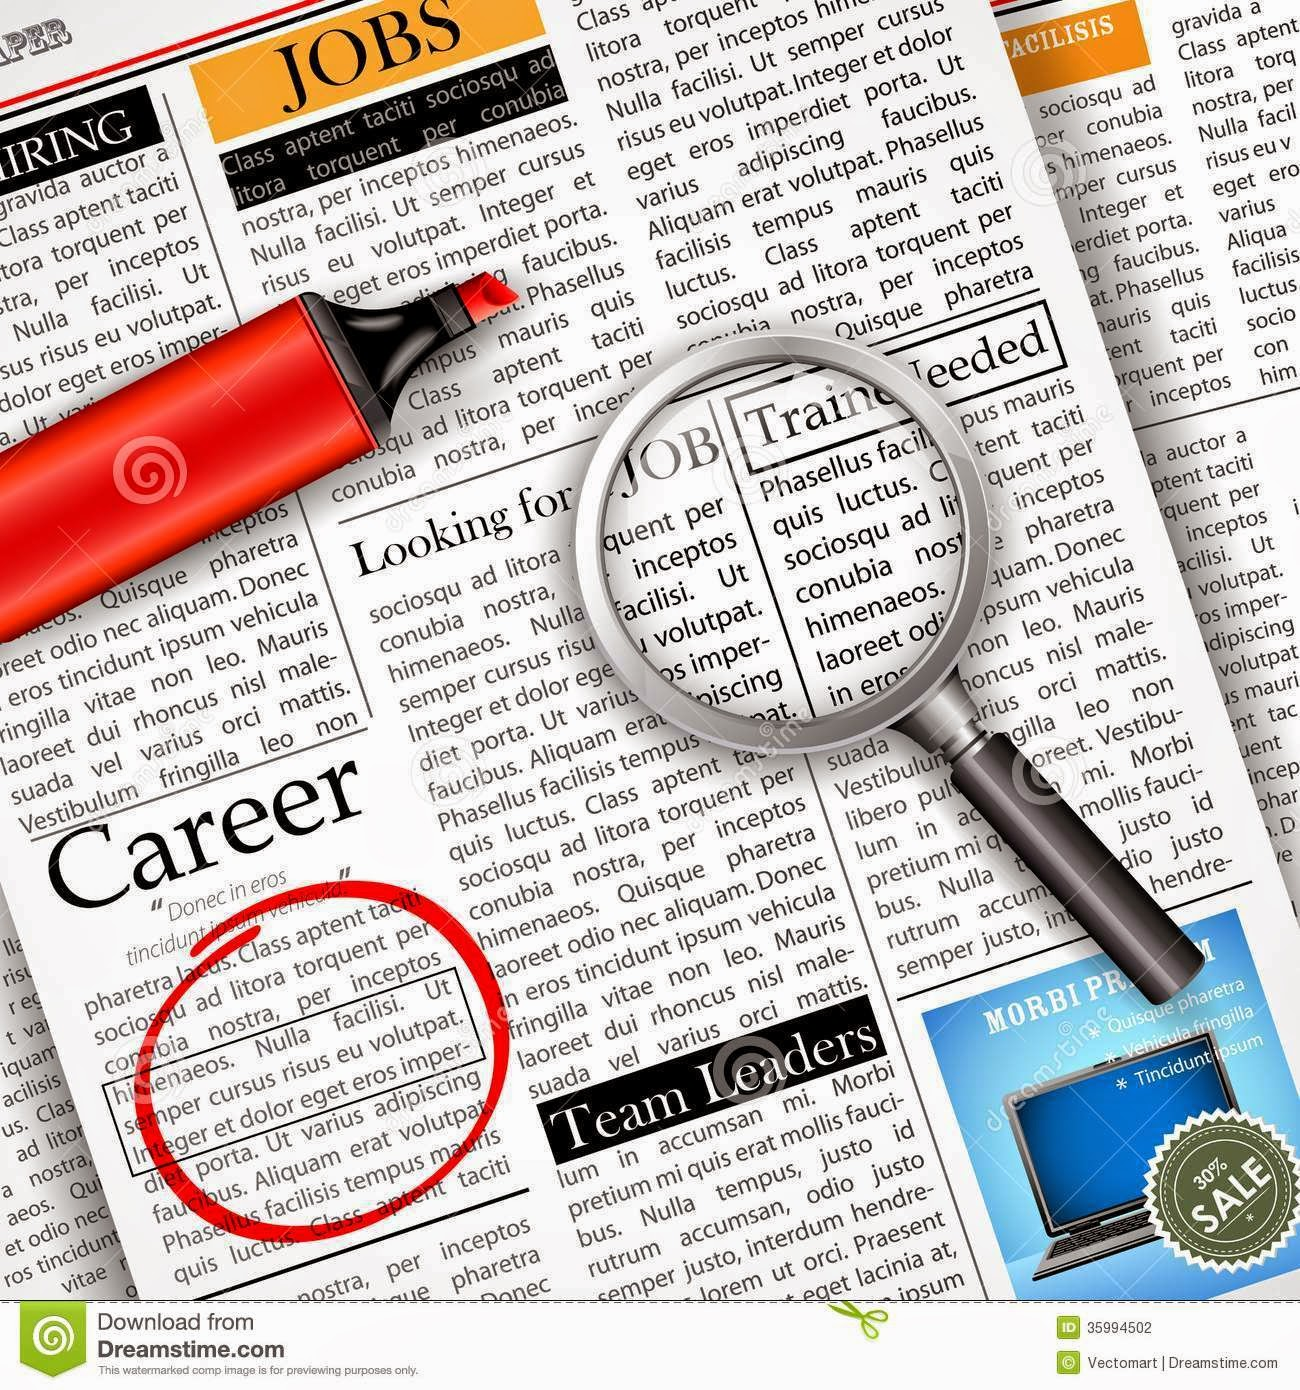 A Job Seekers Tips